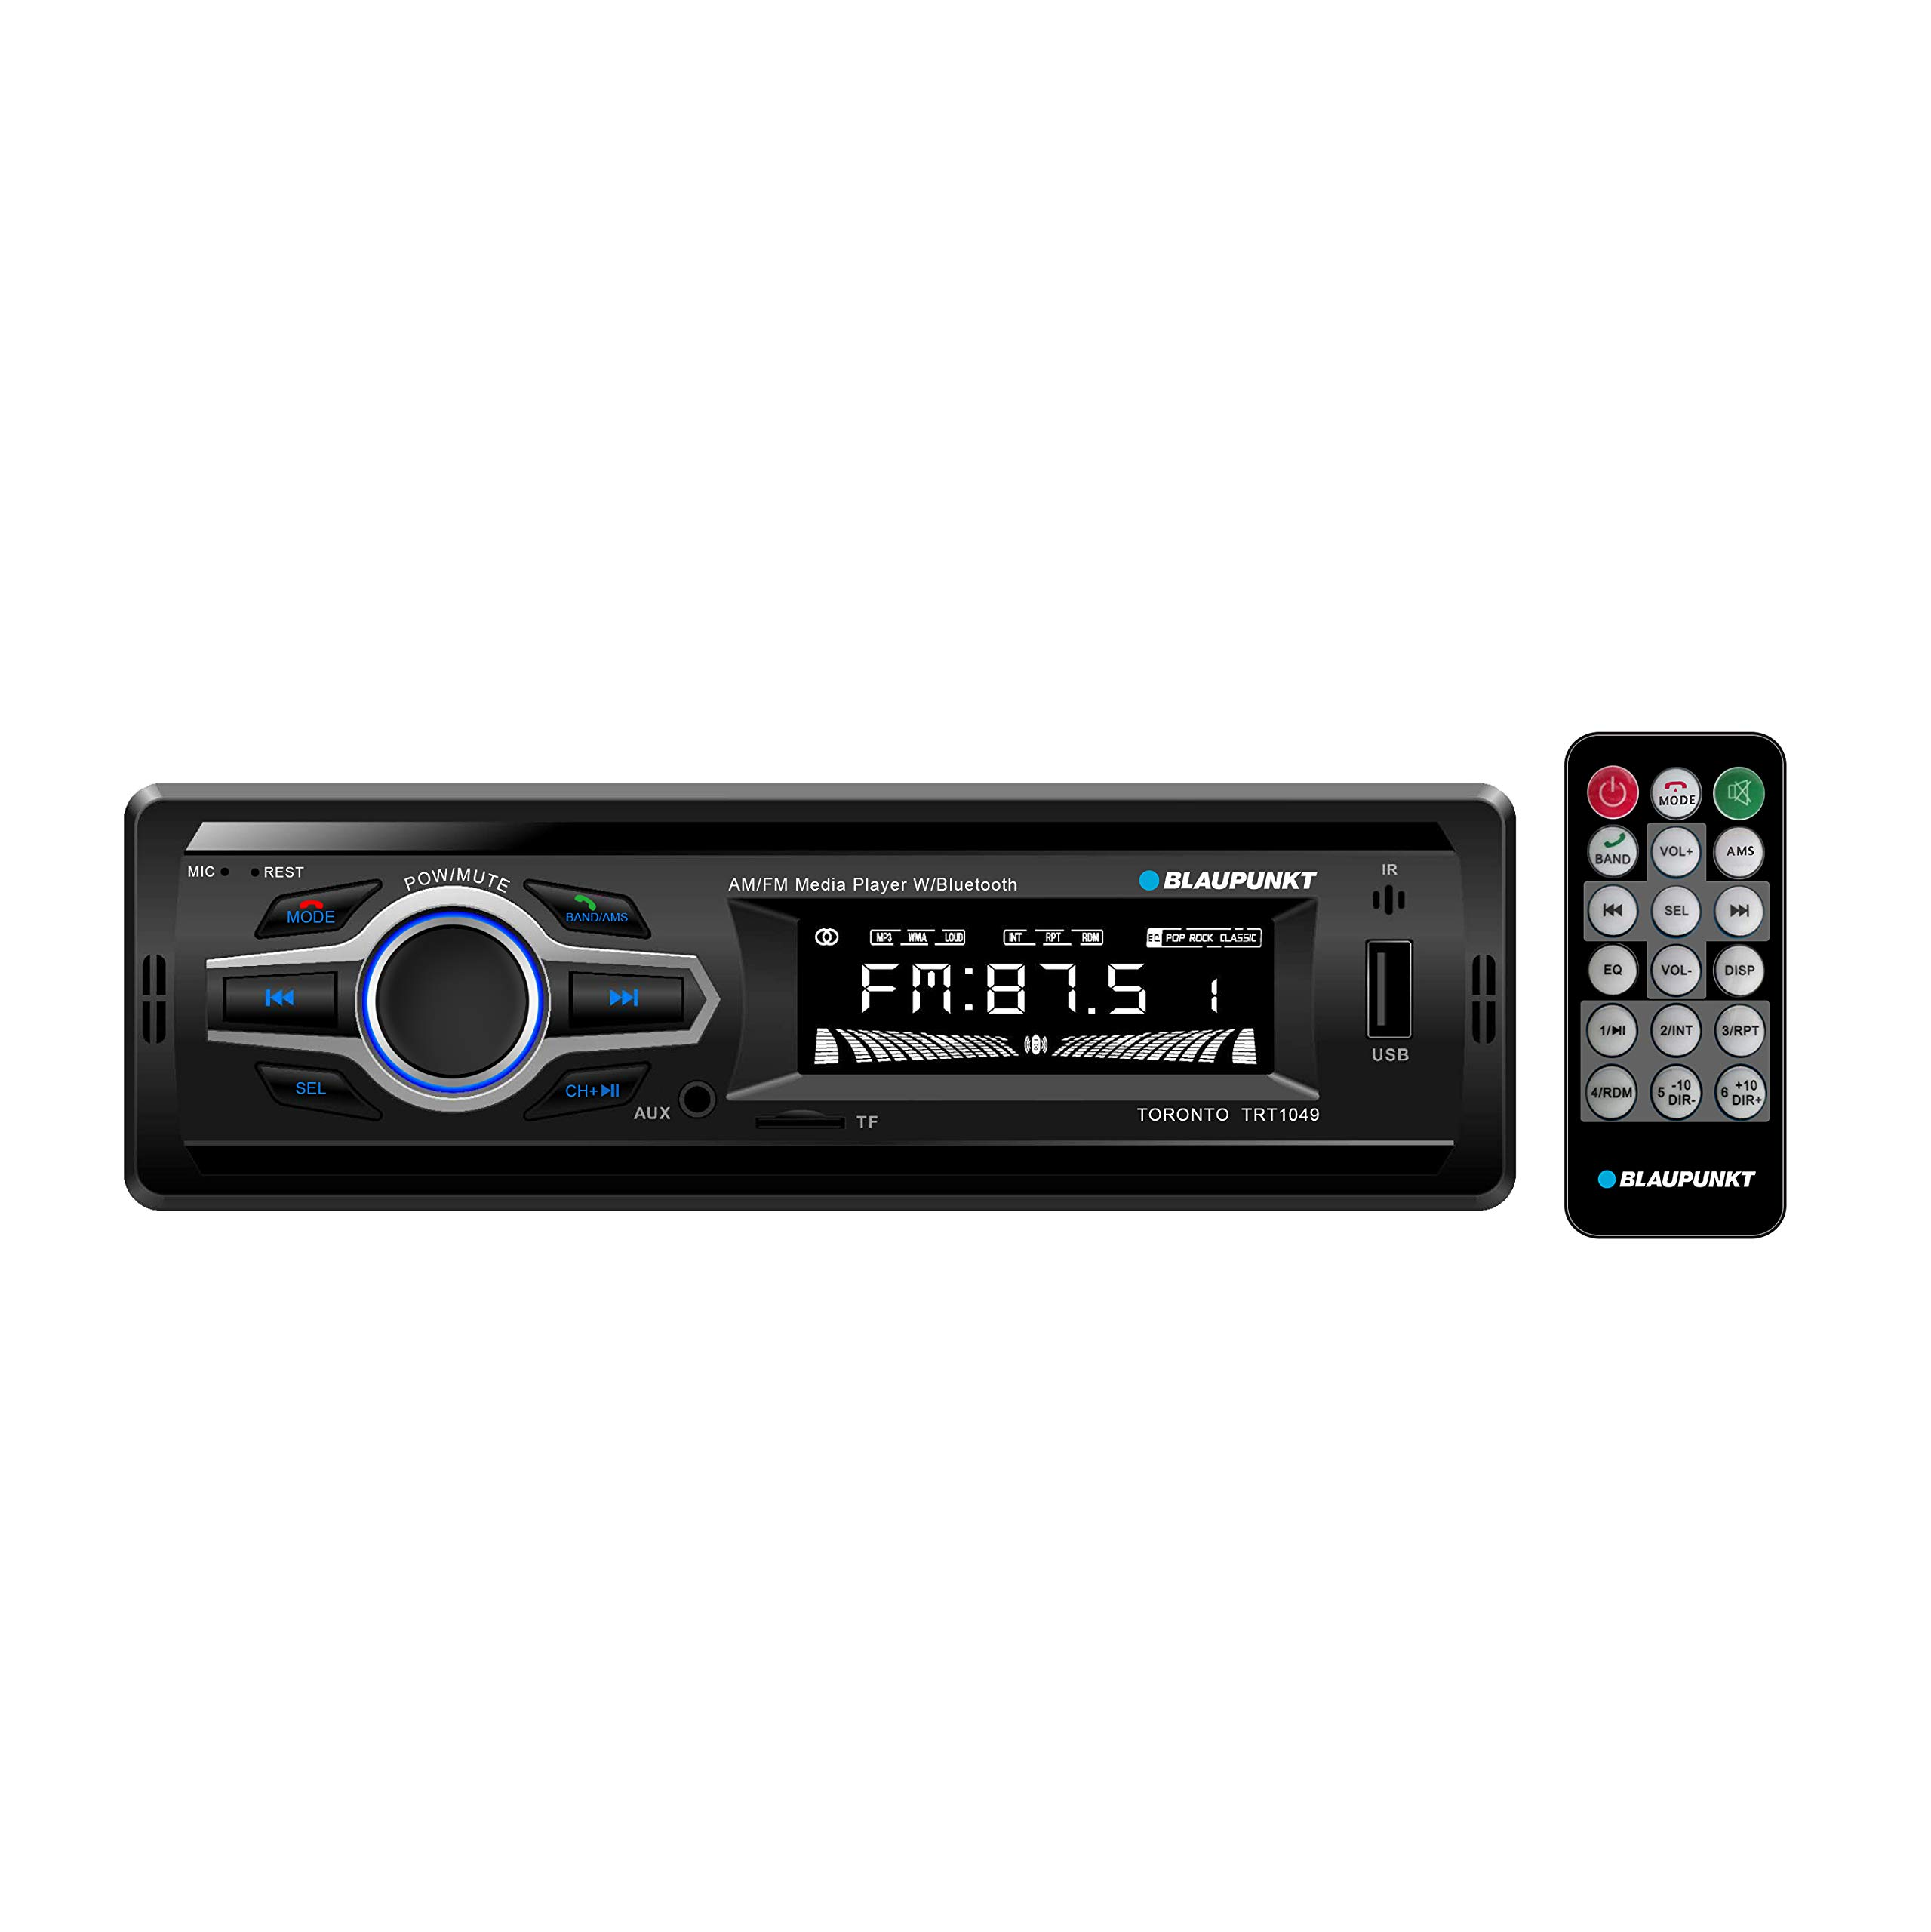 Blaupunkt Toronto AM/FM Media Receiver - Bluetooth, Easy Installation, Remote Control Included, SD Card, Aux Input, Handsfree